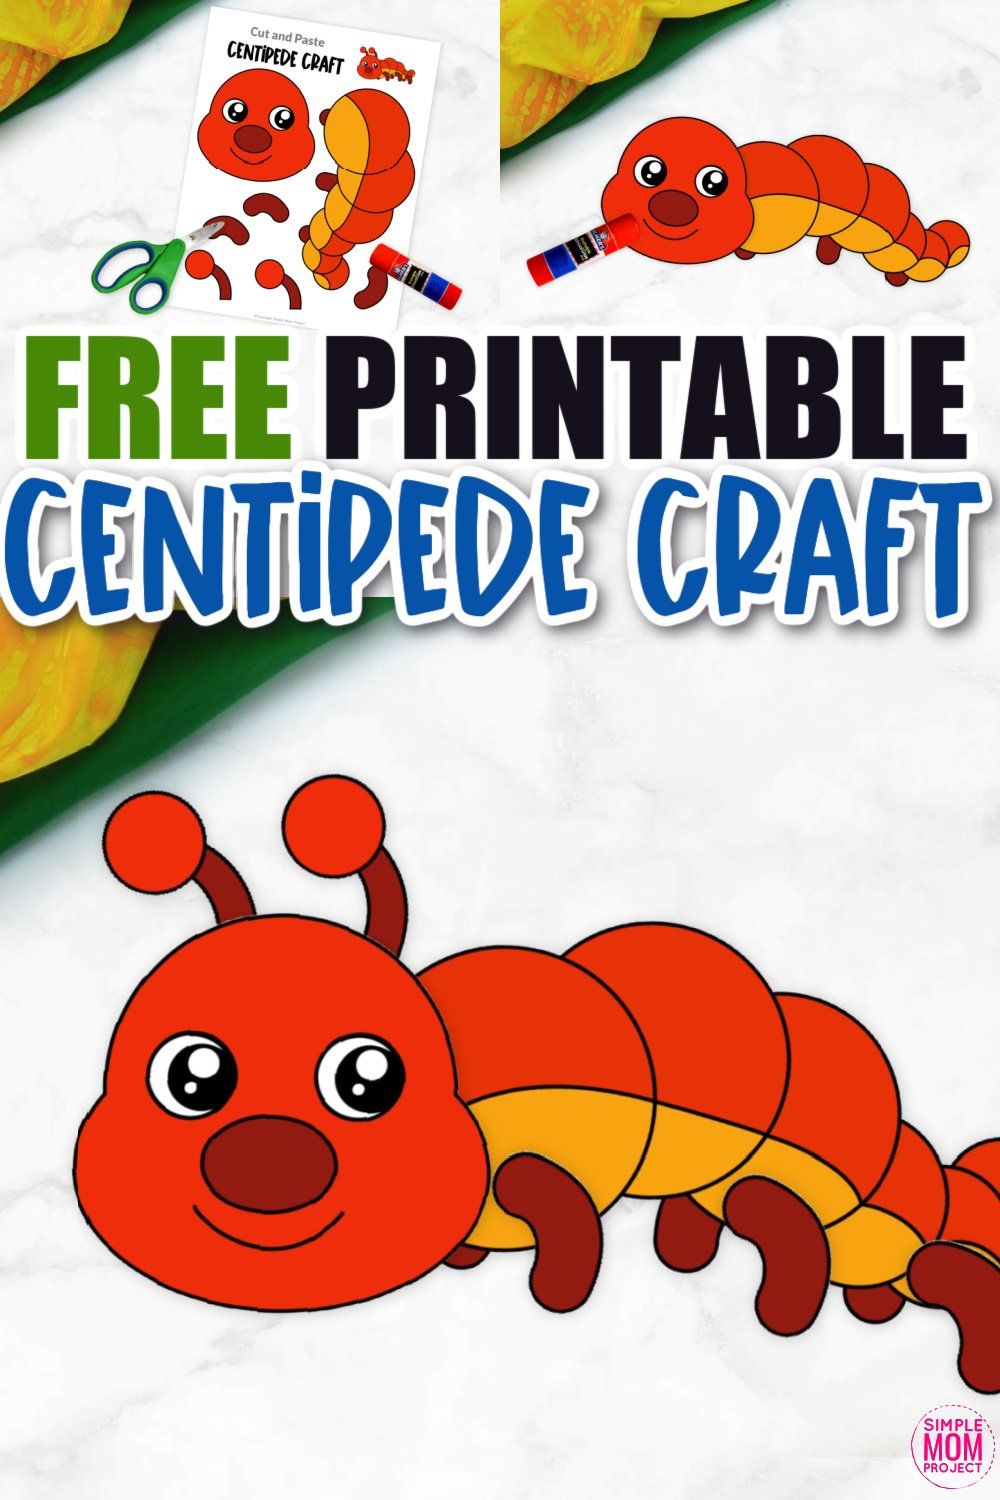 Free Printable Centipede Craft for Kids, preschoolers and toddlers